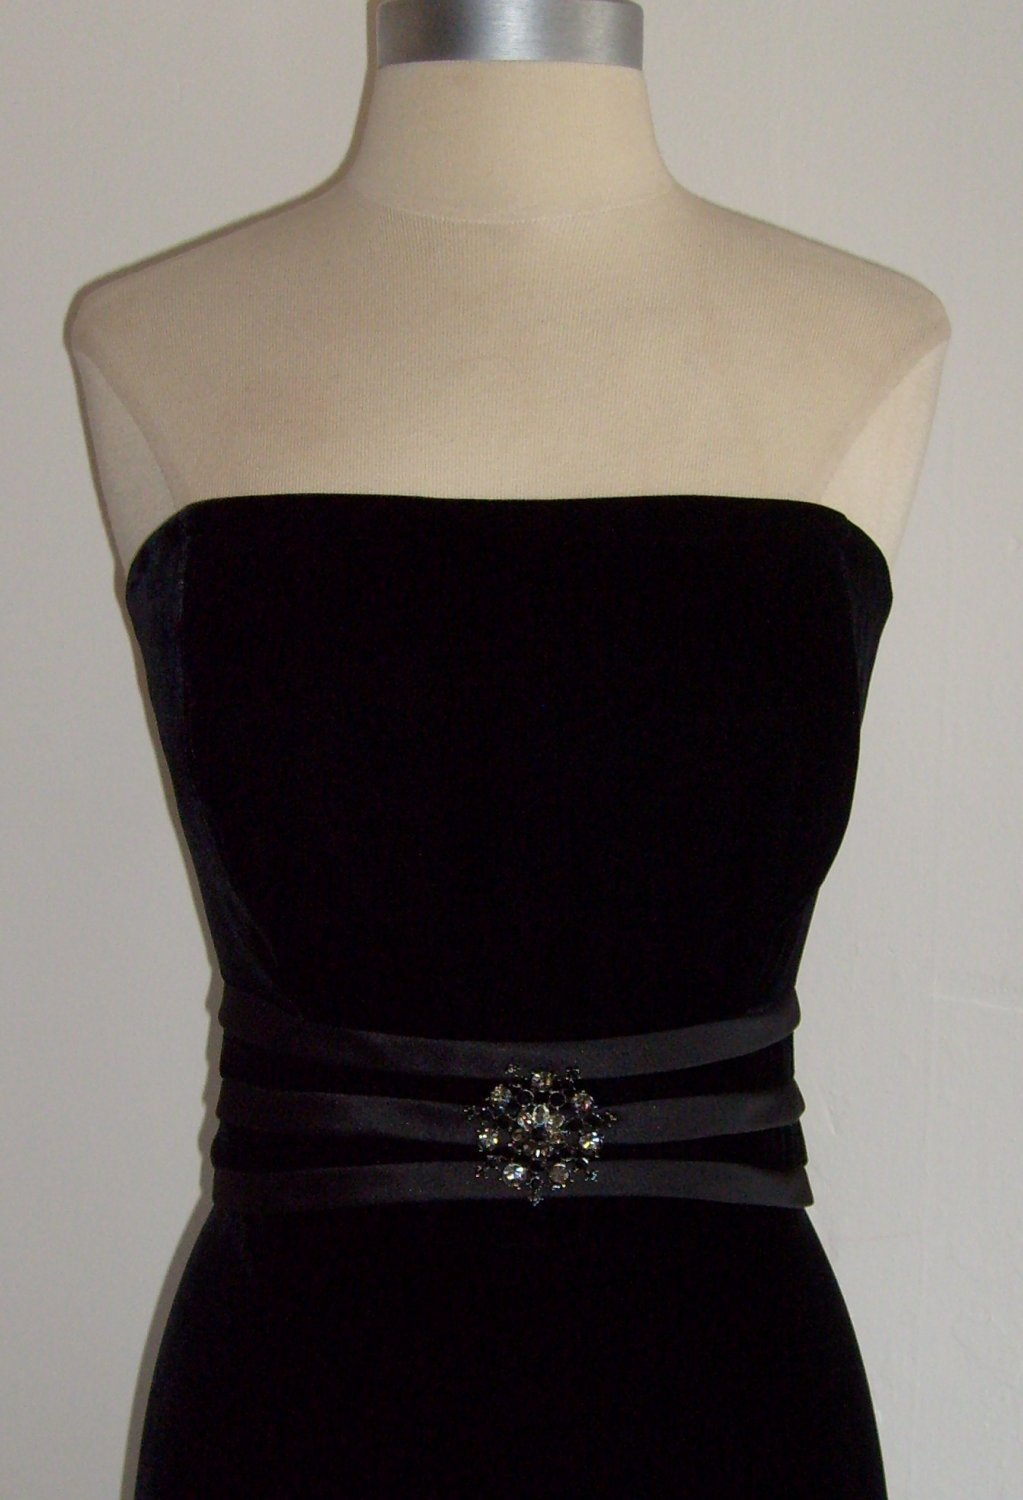 Talbots Black Velvet Strapless Cocktail Dress Size 10 Sold